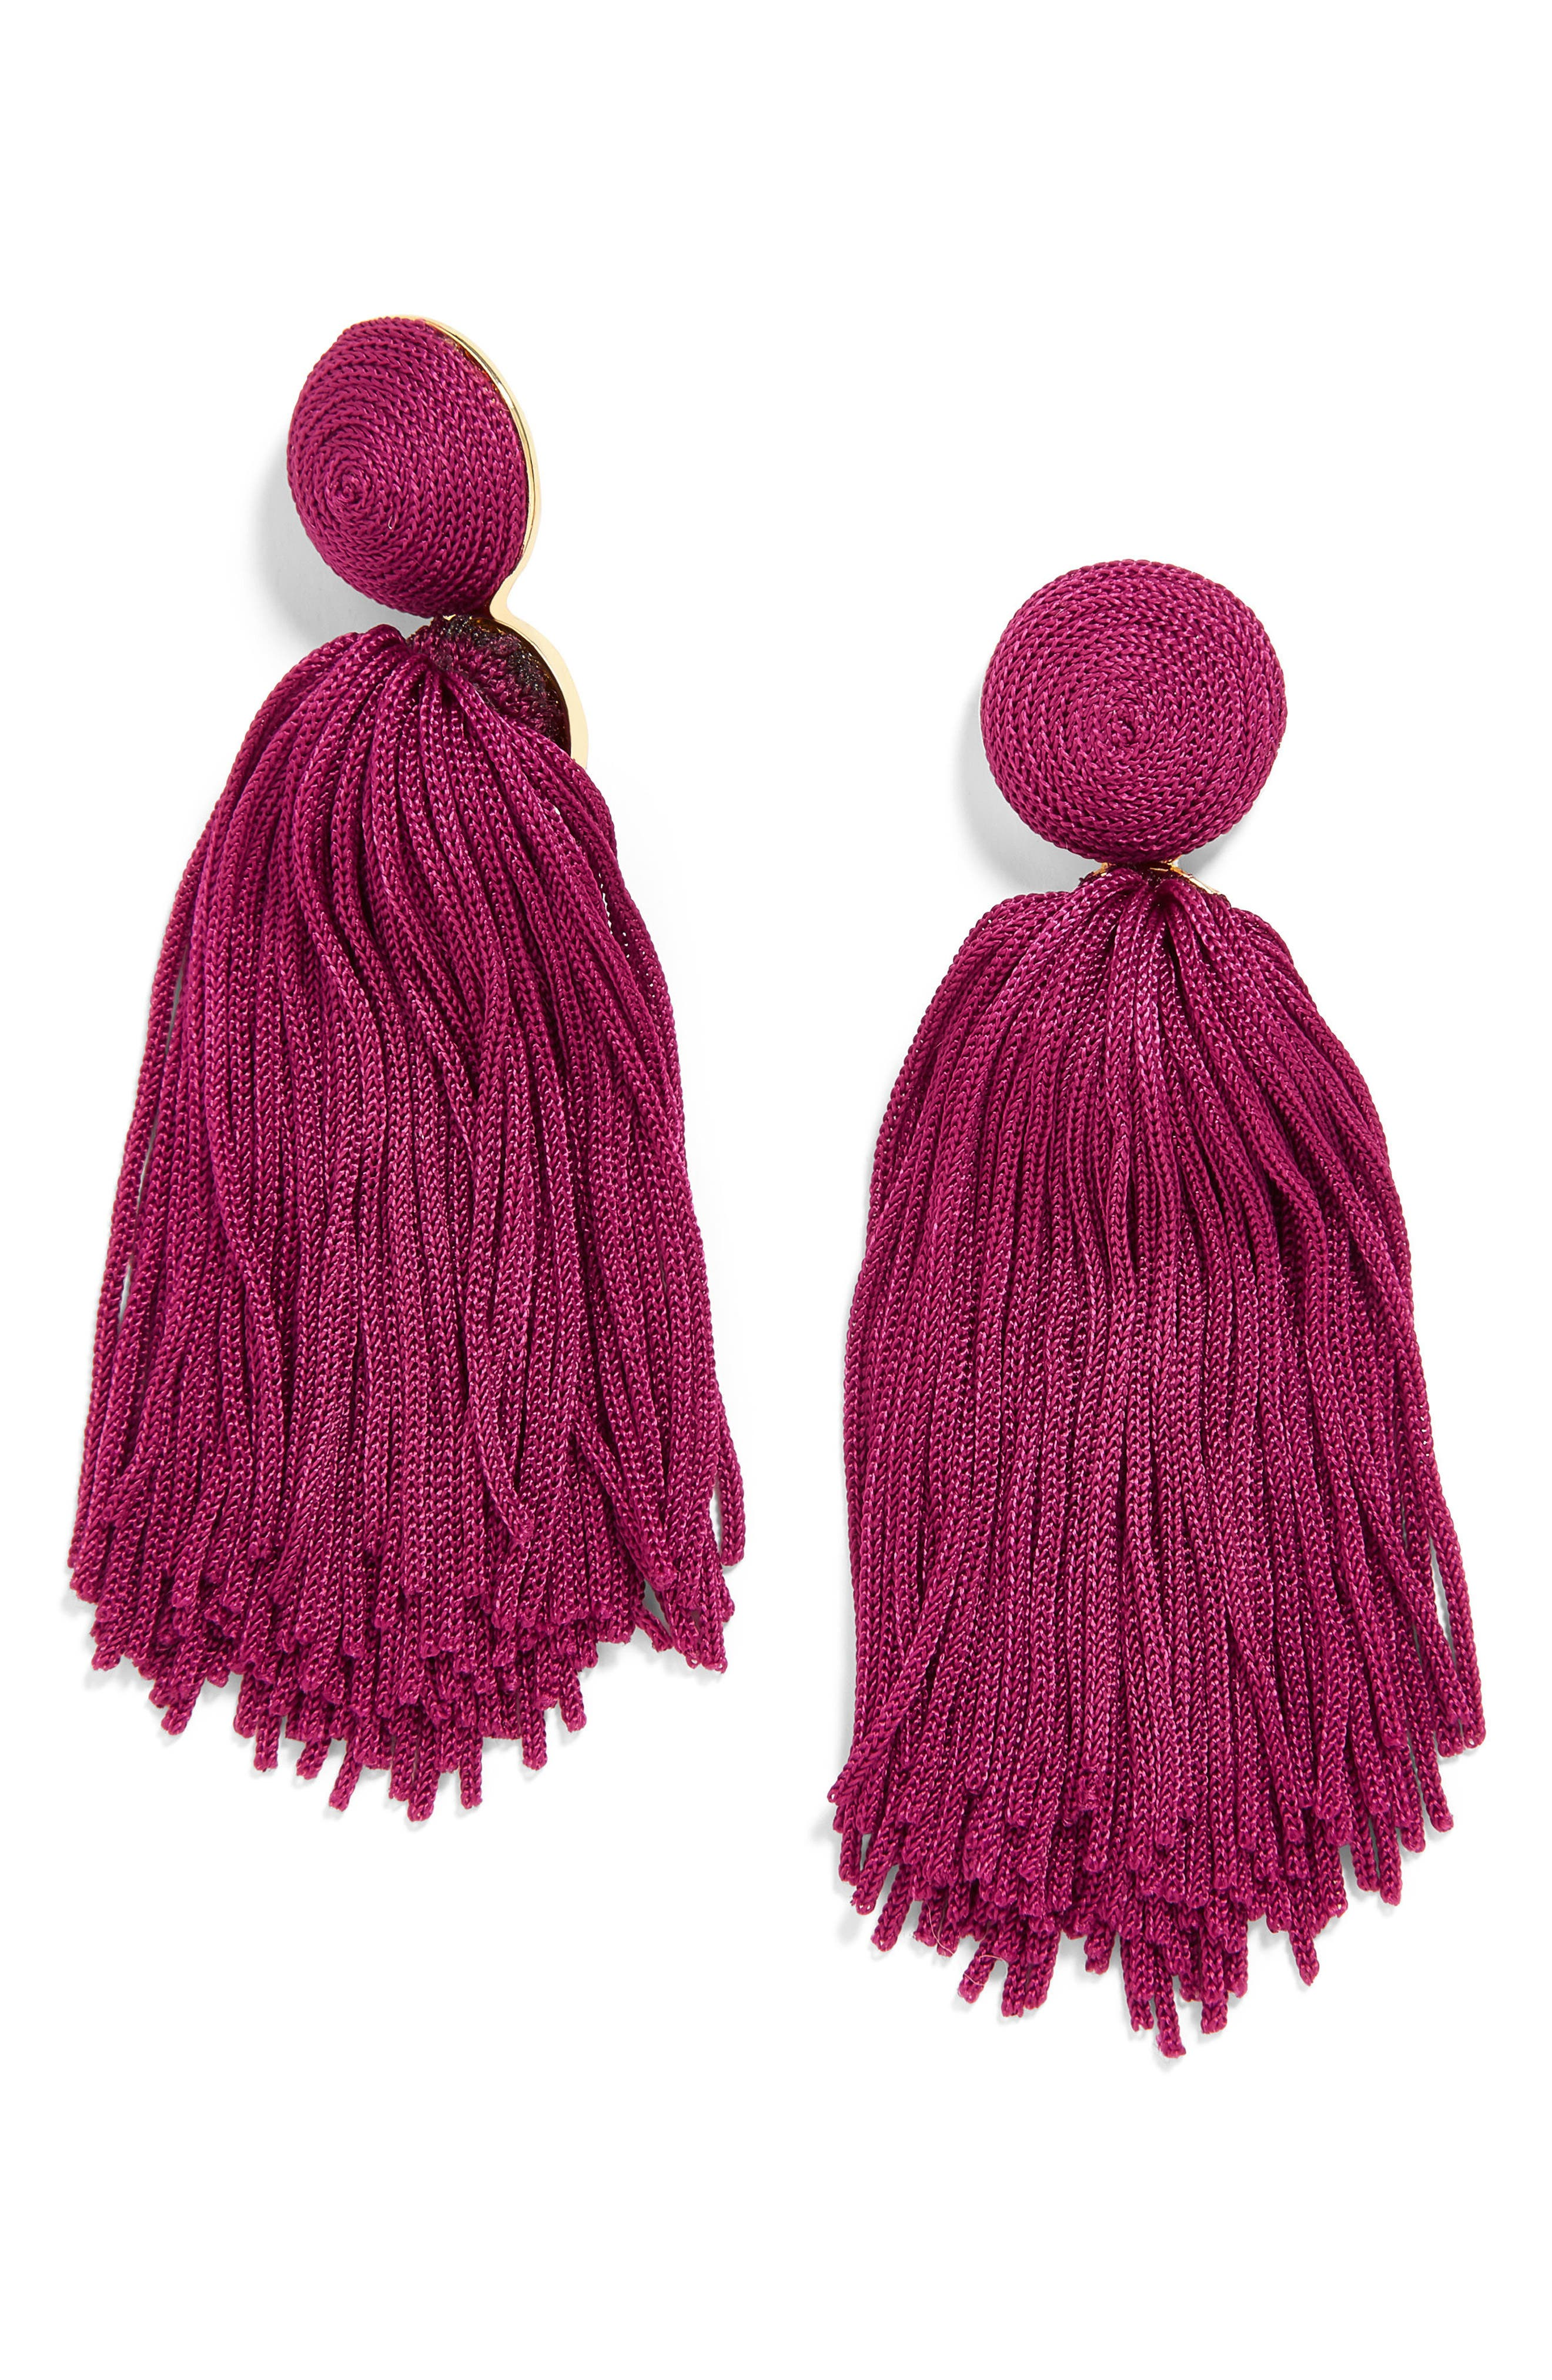 Sonatina Tassel Earrings,                             Main thumbnail 9, color,